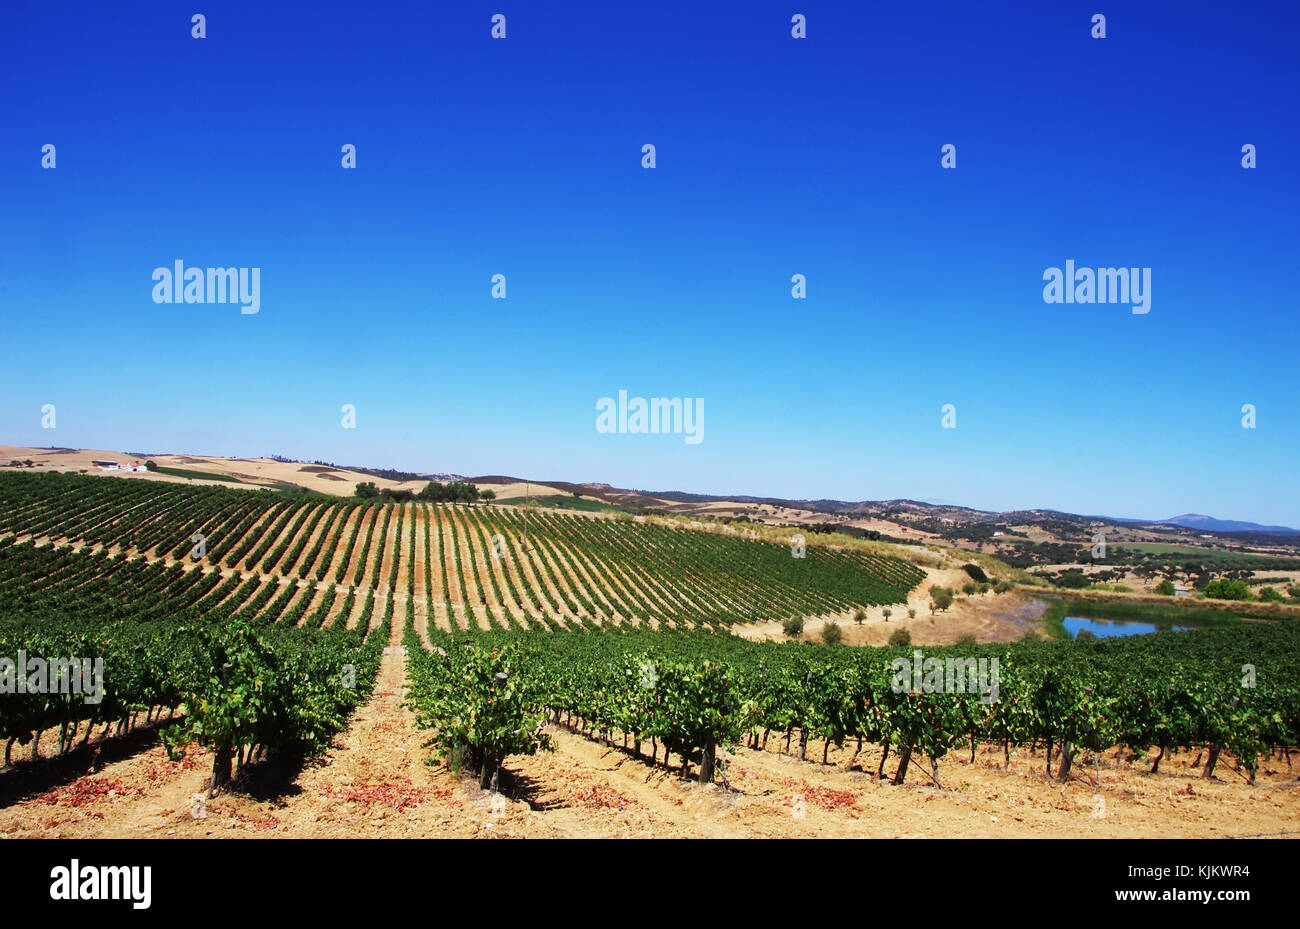 Vineyard at Alentejo region, south of  Portugal. Stock Photo